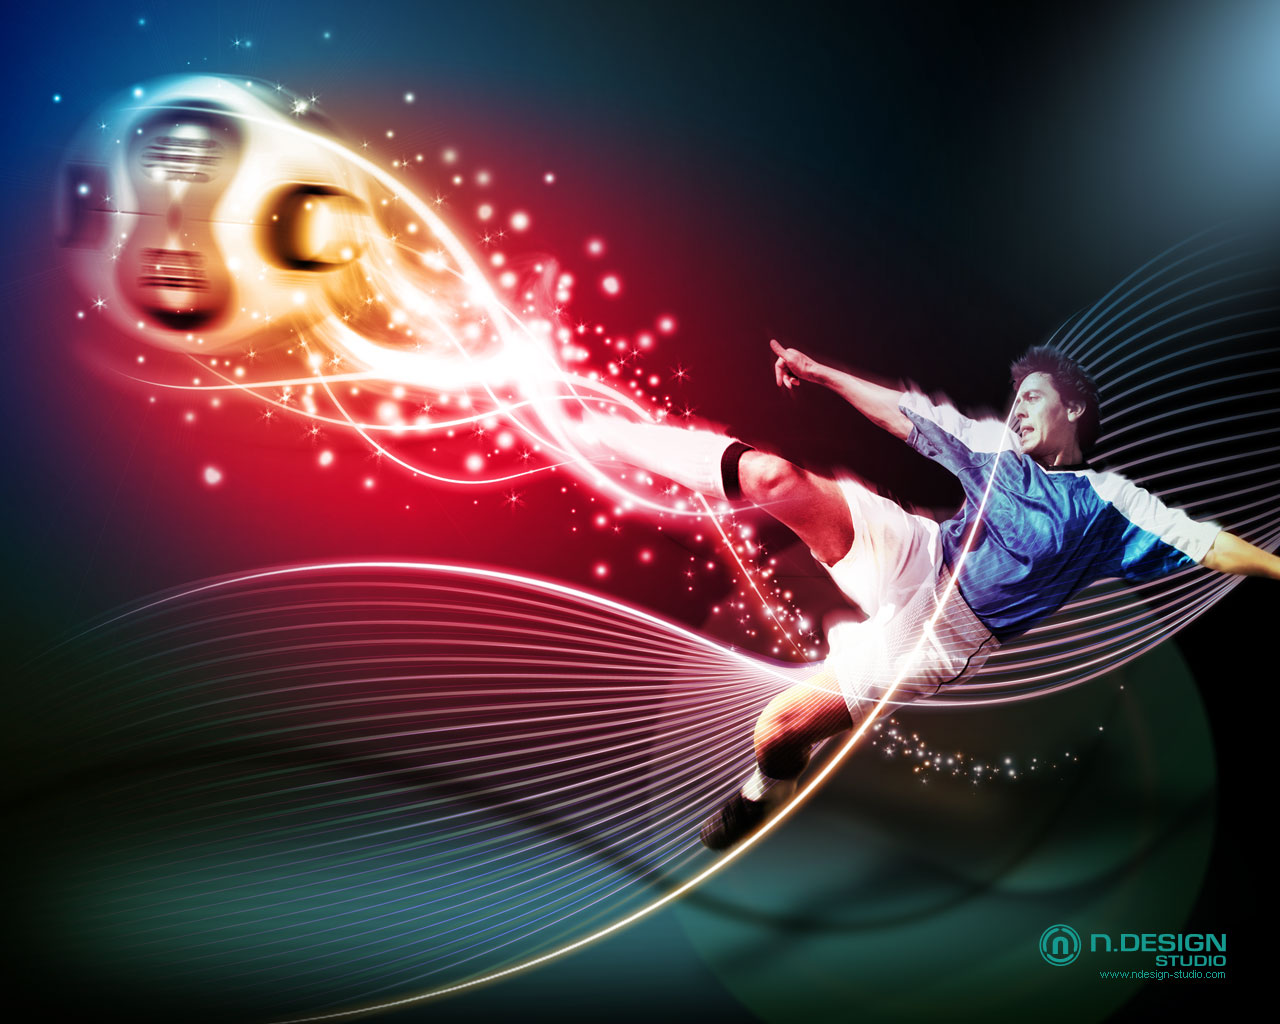 Amazing Soccer Wallpapers: Free Beautiful Desktop Wallpapers,Background Wallpapers